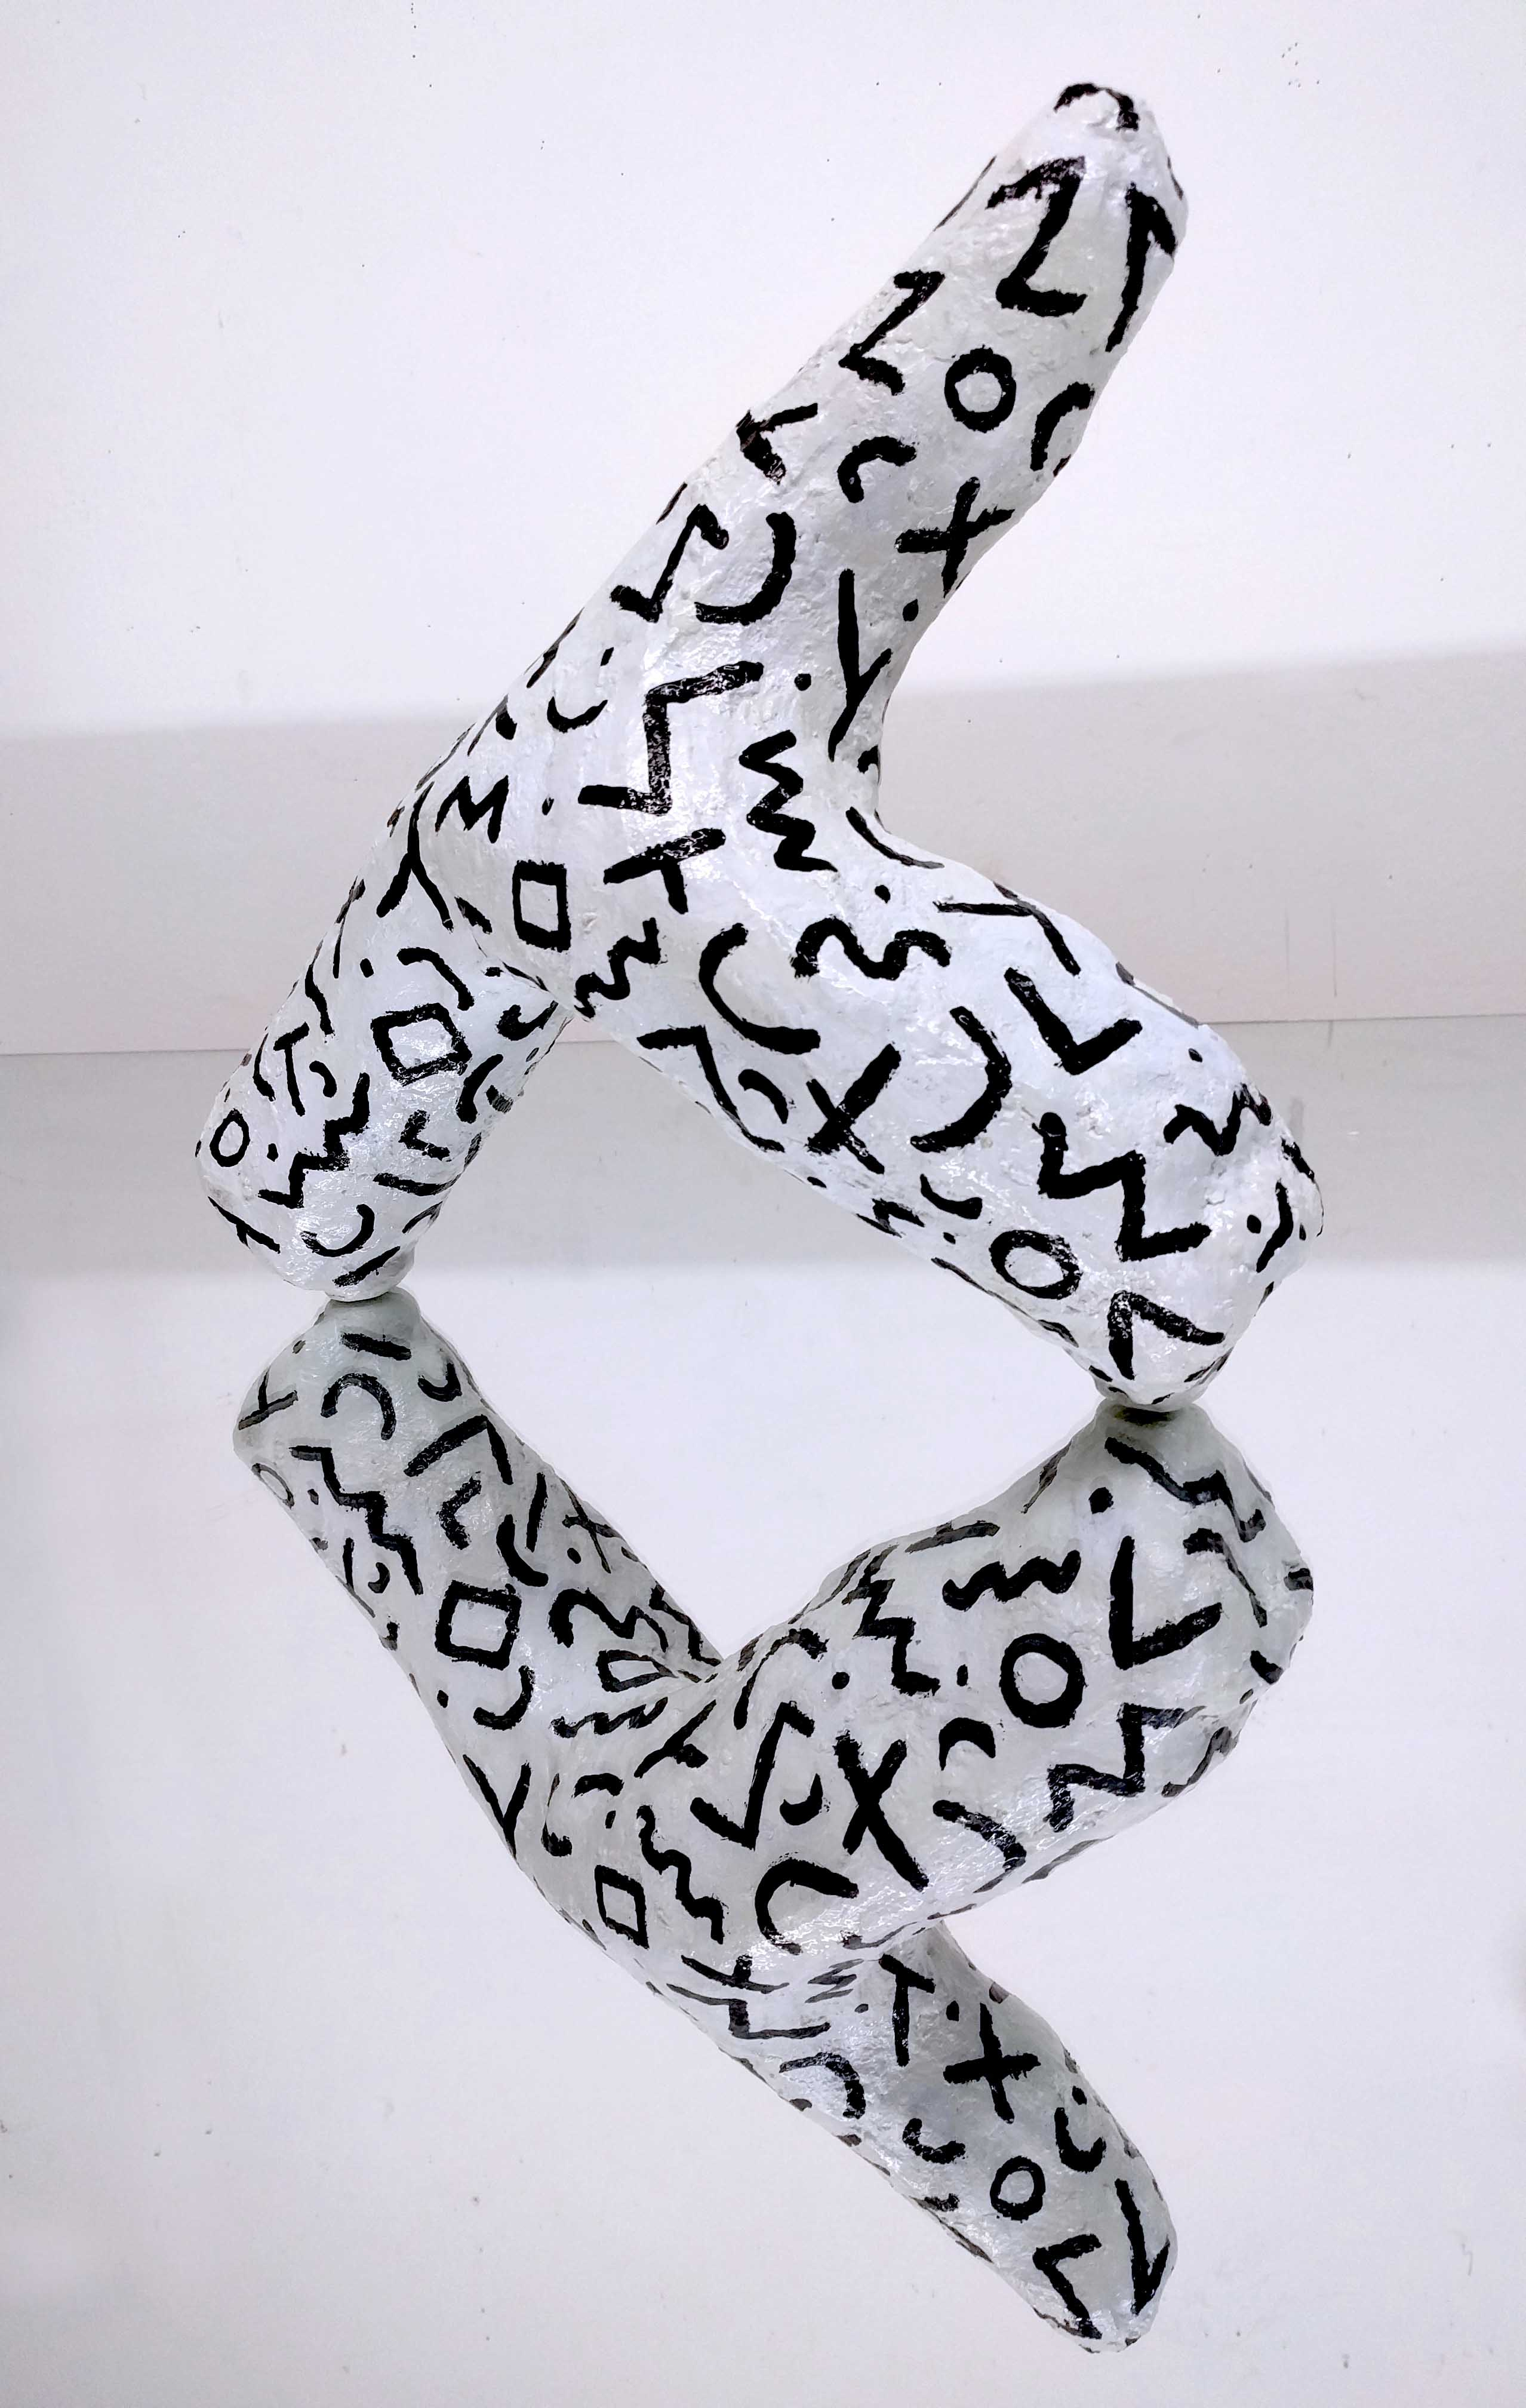 white hydrocal y shape with variety black curled line pattern on a mirror